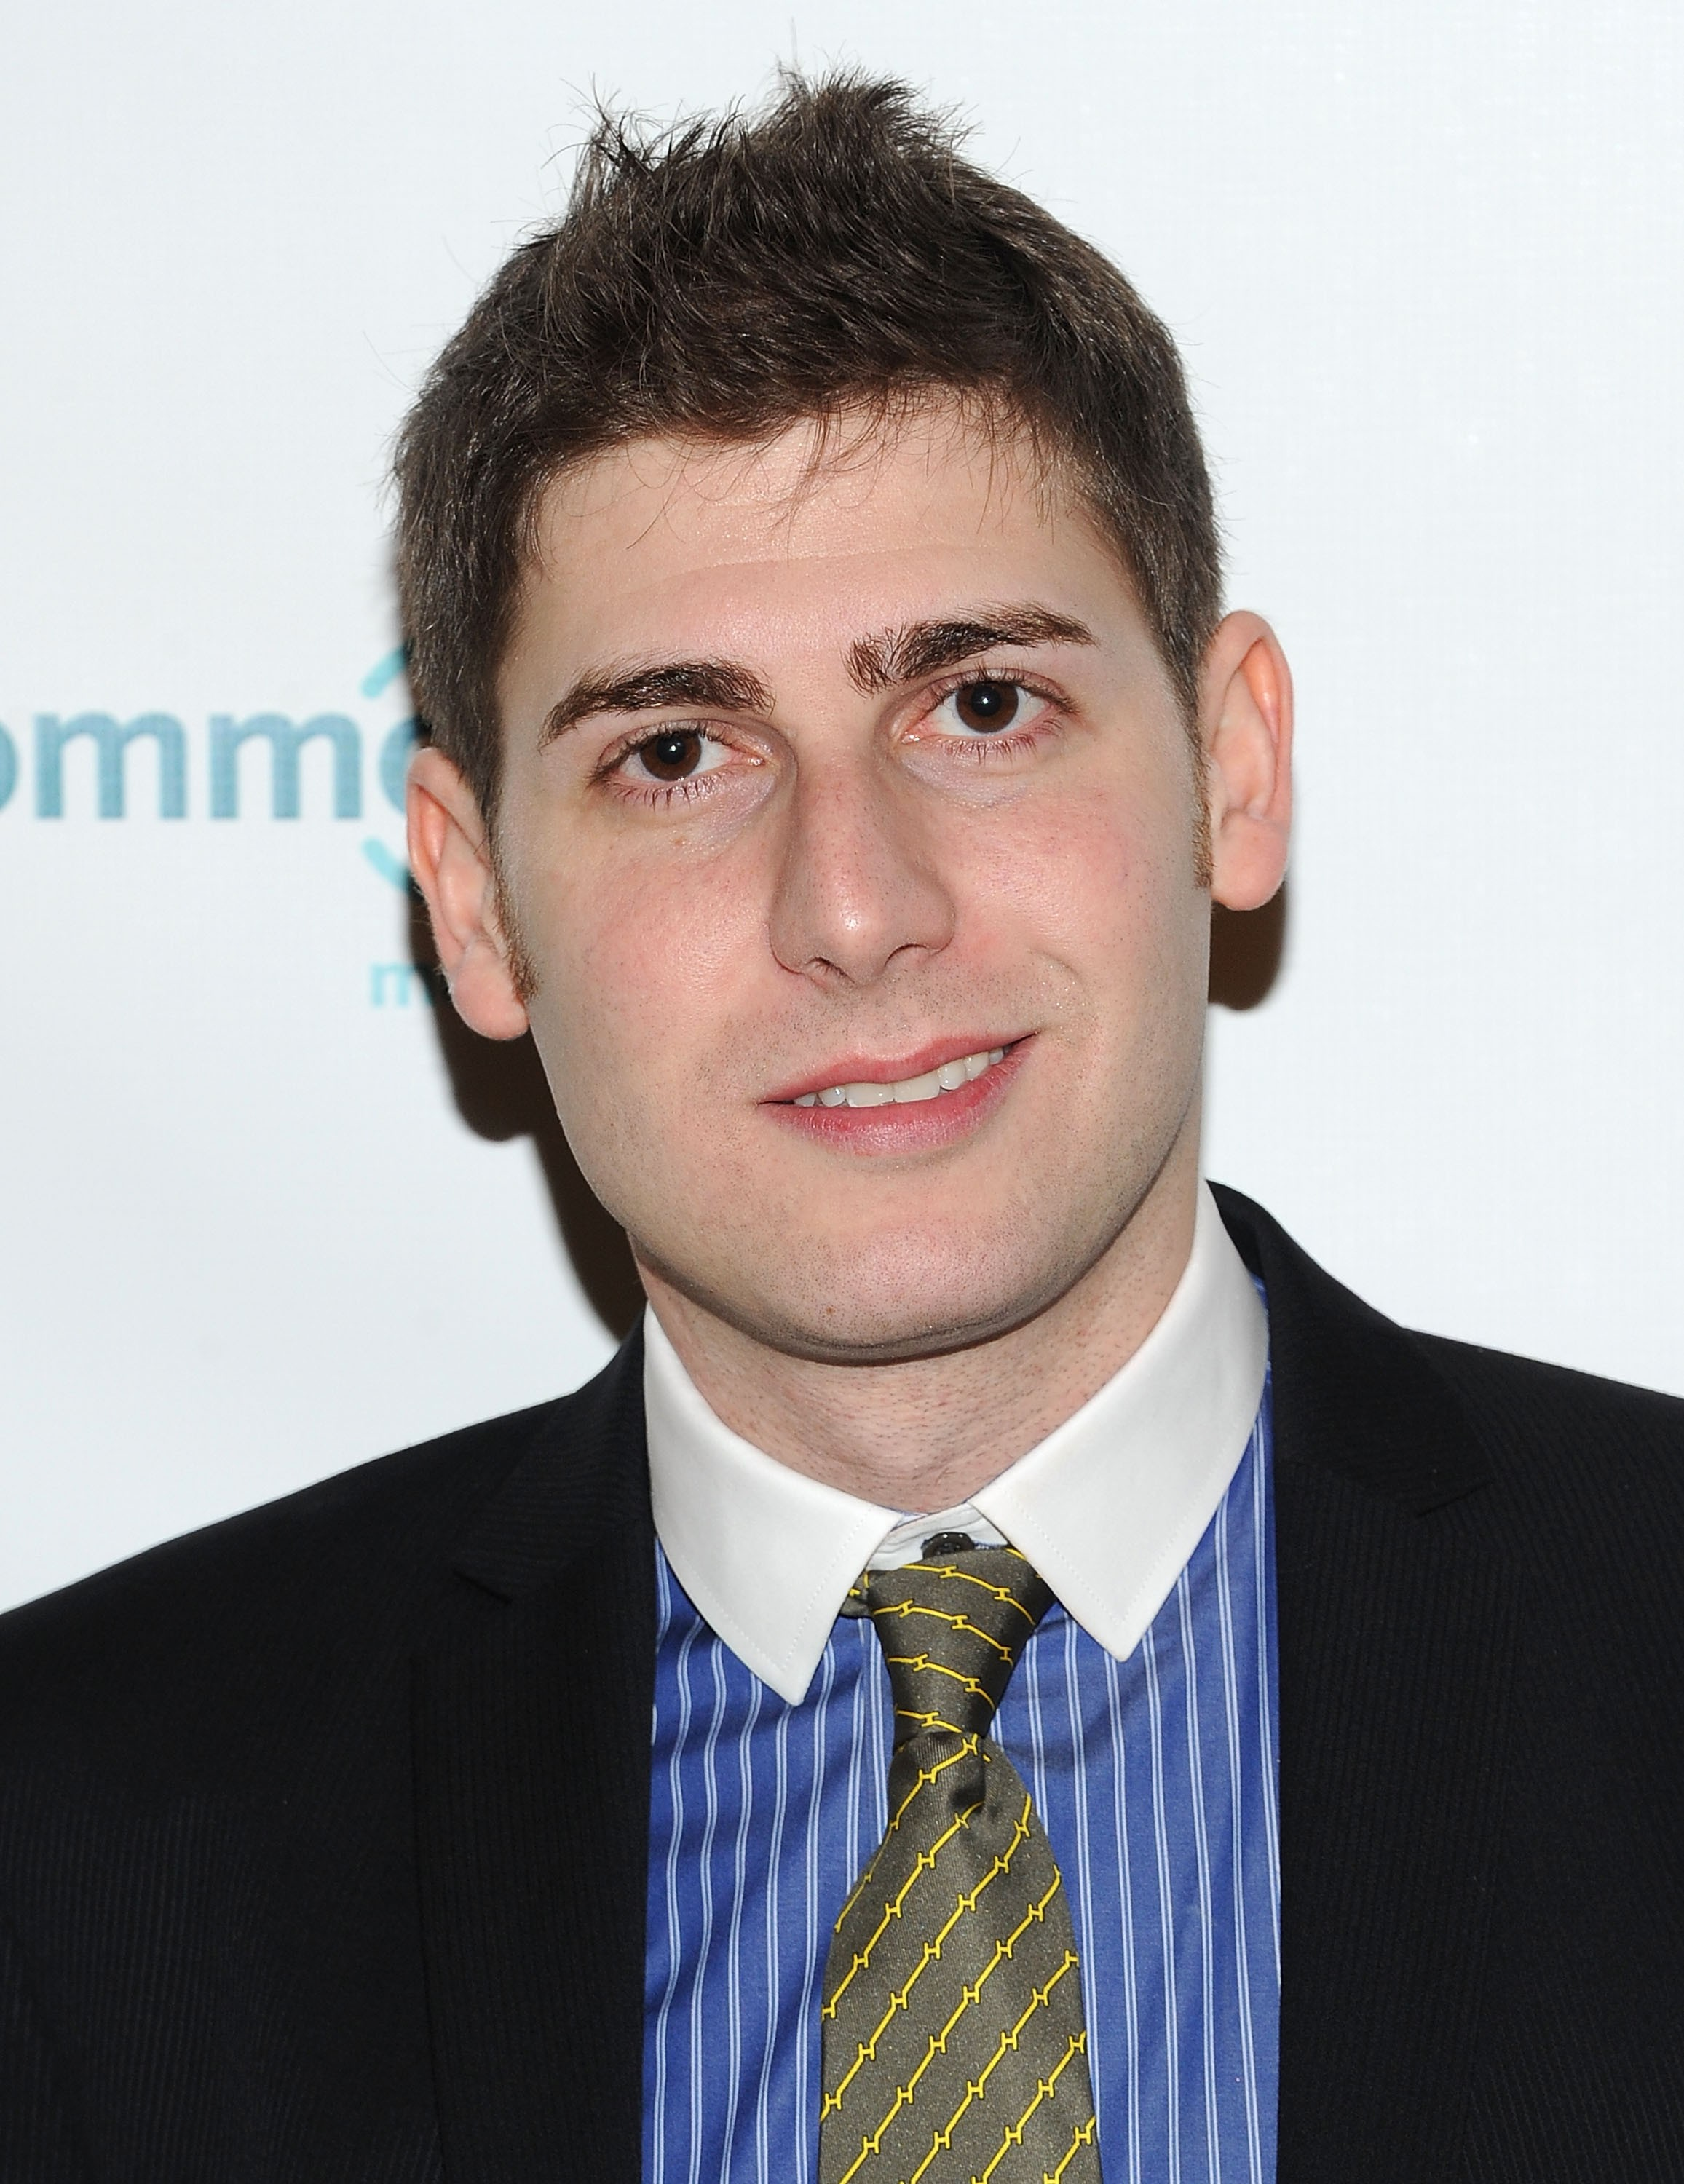 Eduardo Saverin (Foto: Getty Images/ Jason Kempin)